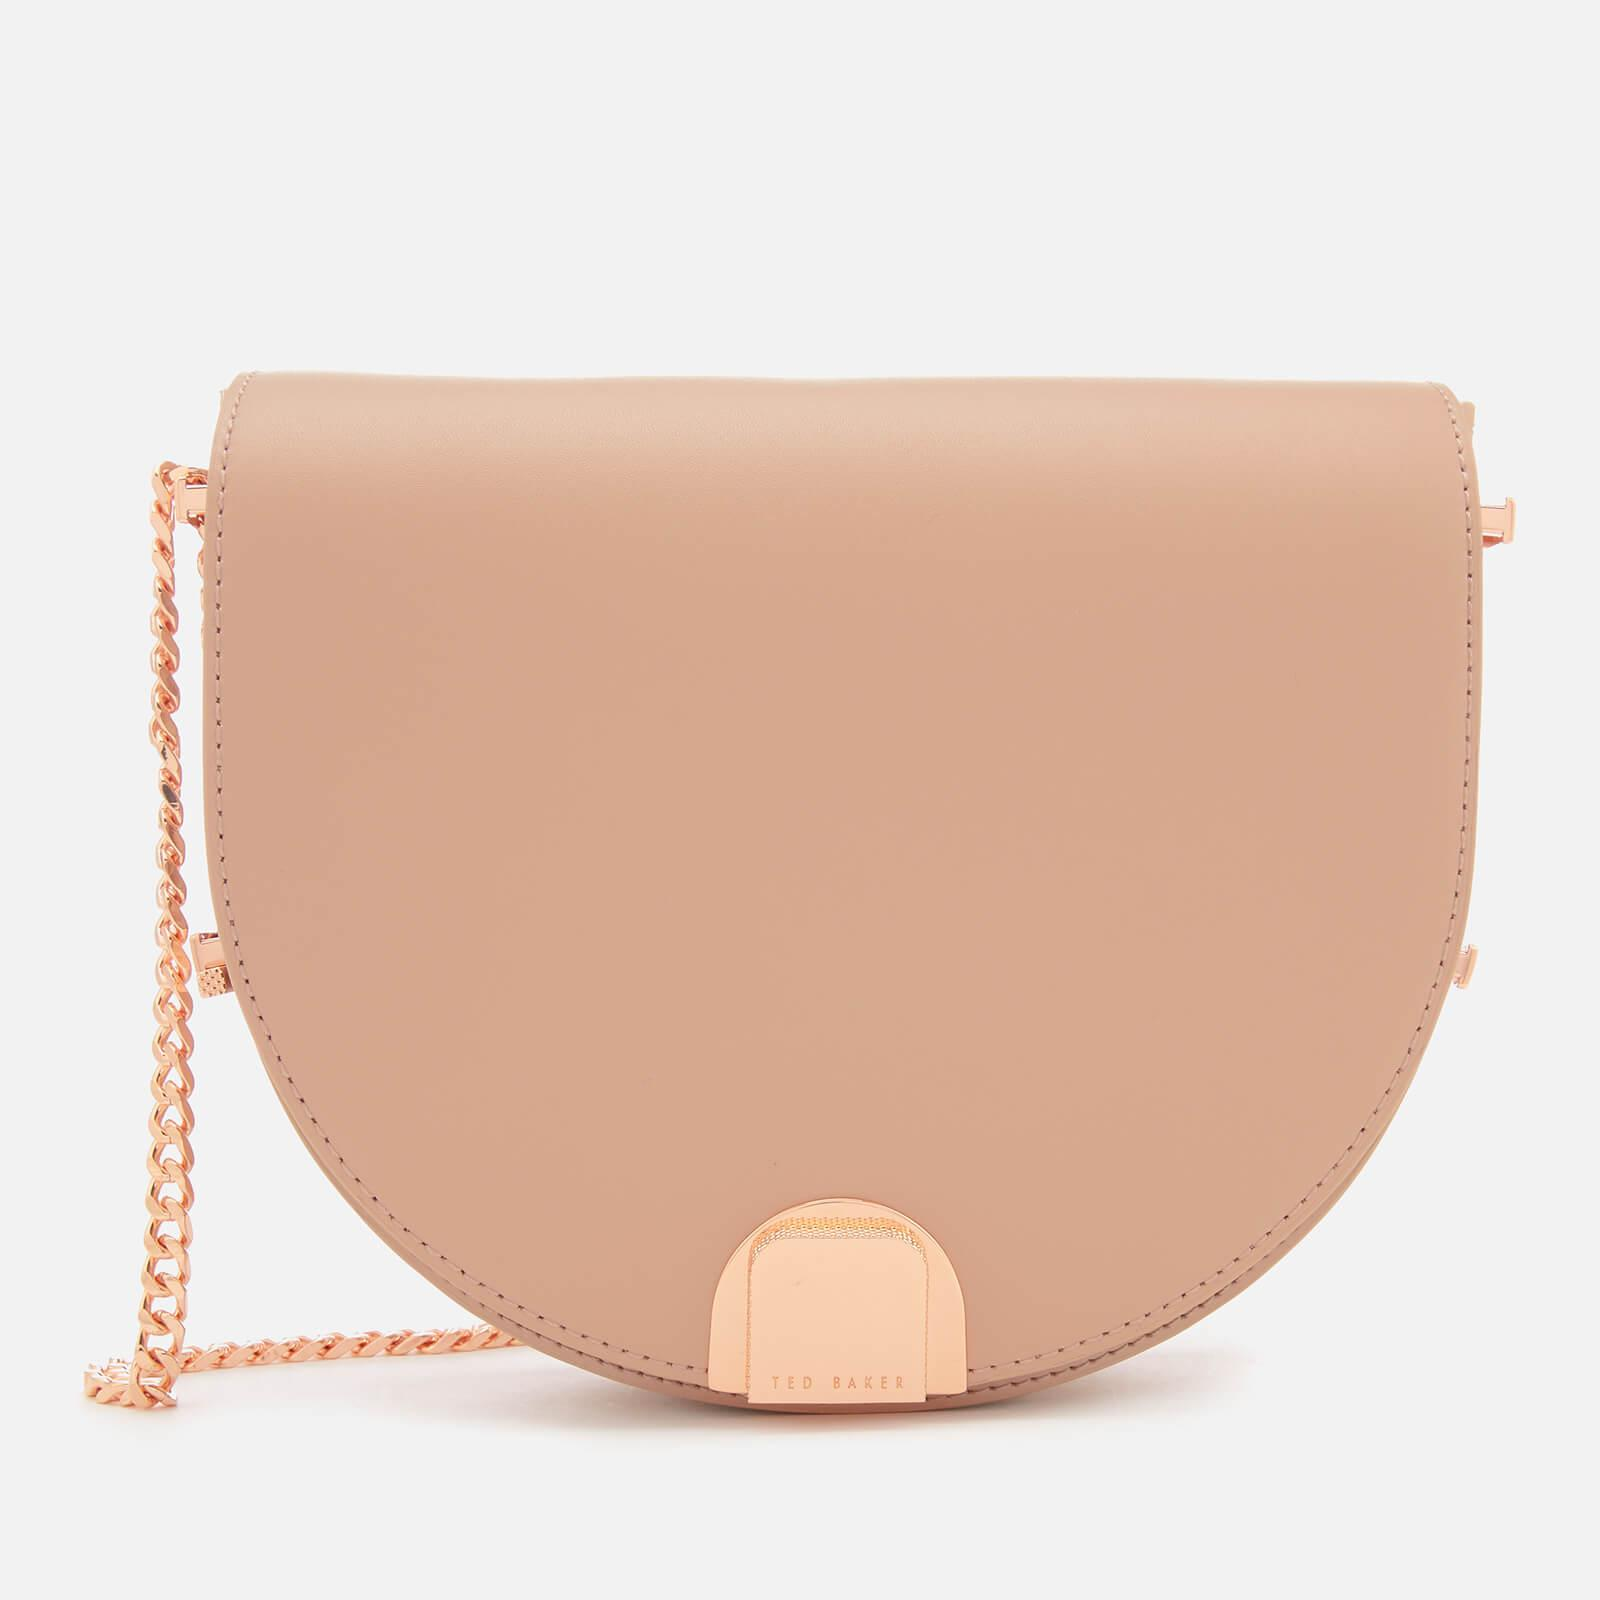 Flip Clasp Leather Moon Bag Ted Baker vhBIRcgZ